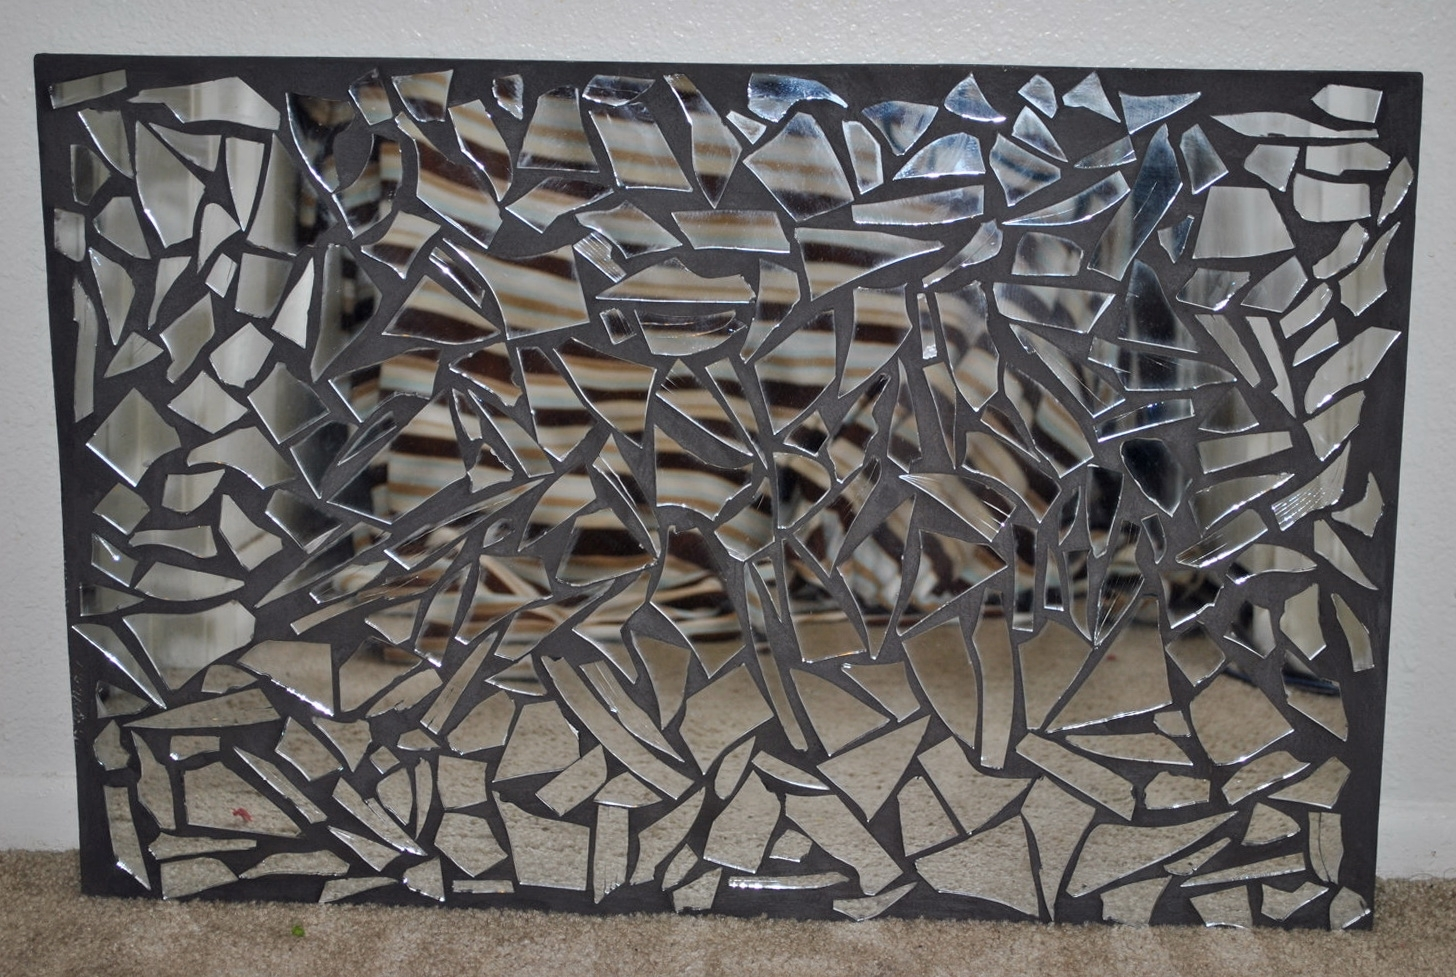 Most Recent Modern Mirrored Wall Art With Regard To Wall Art Designs: Mirrored Wall Art Mirrored Mosaic Wall Art Large (View 10 of 15)